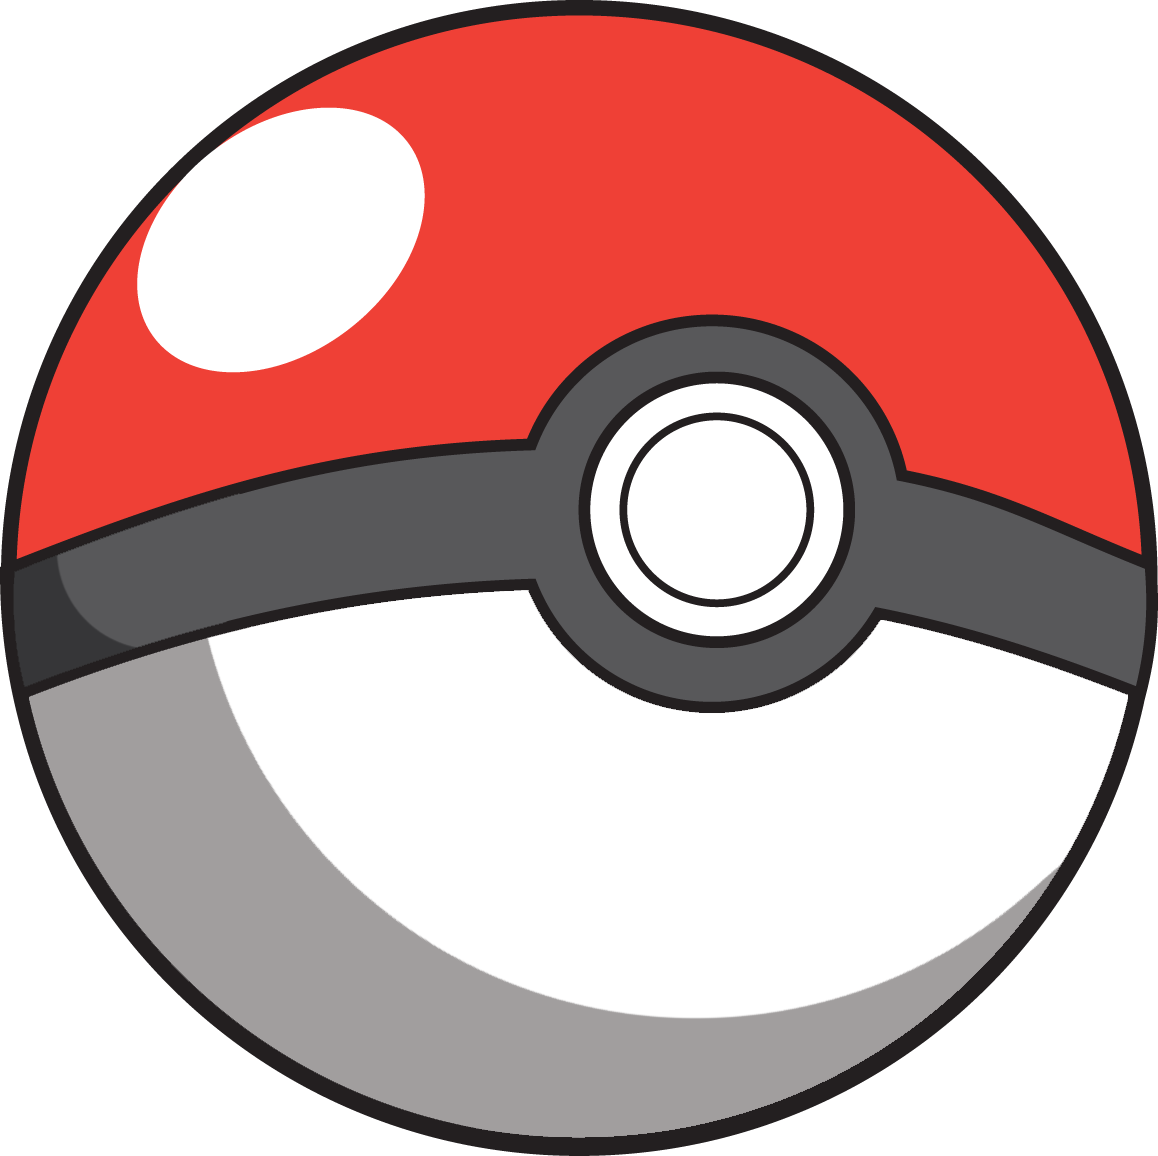 Pin by next on. Pokeball clipart gotta catch em all